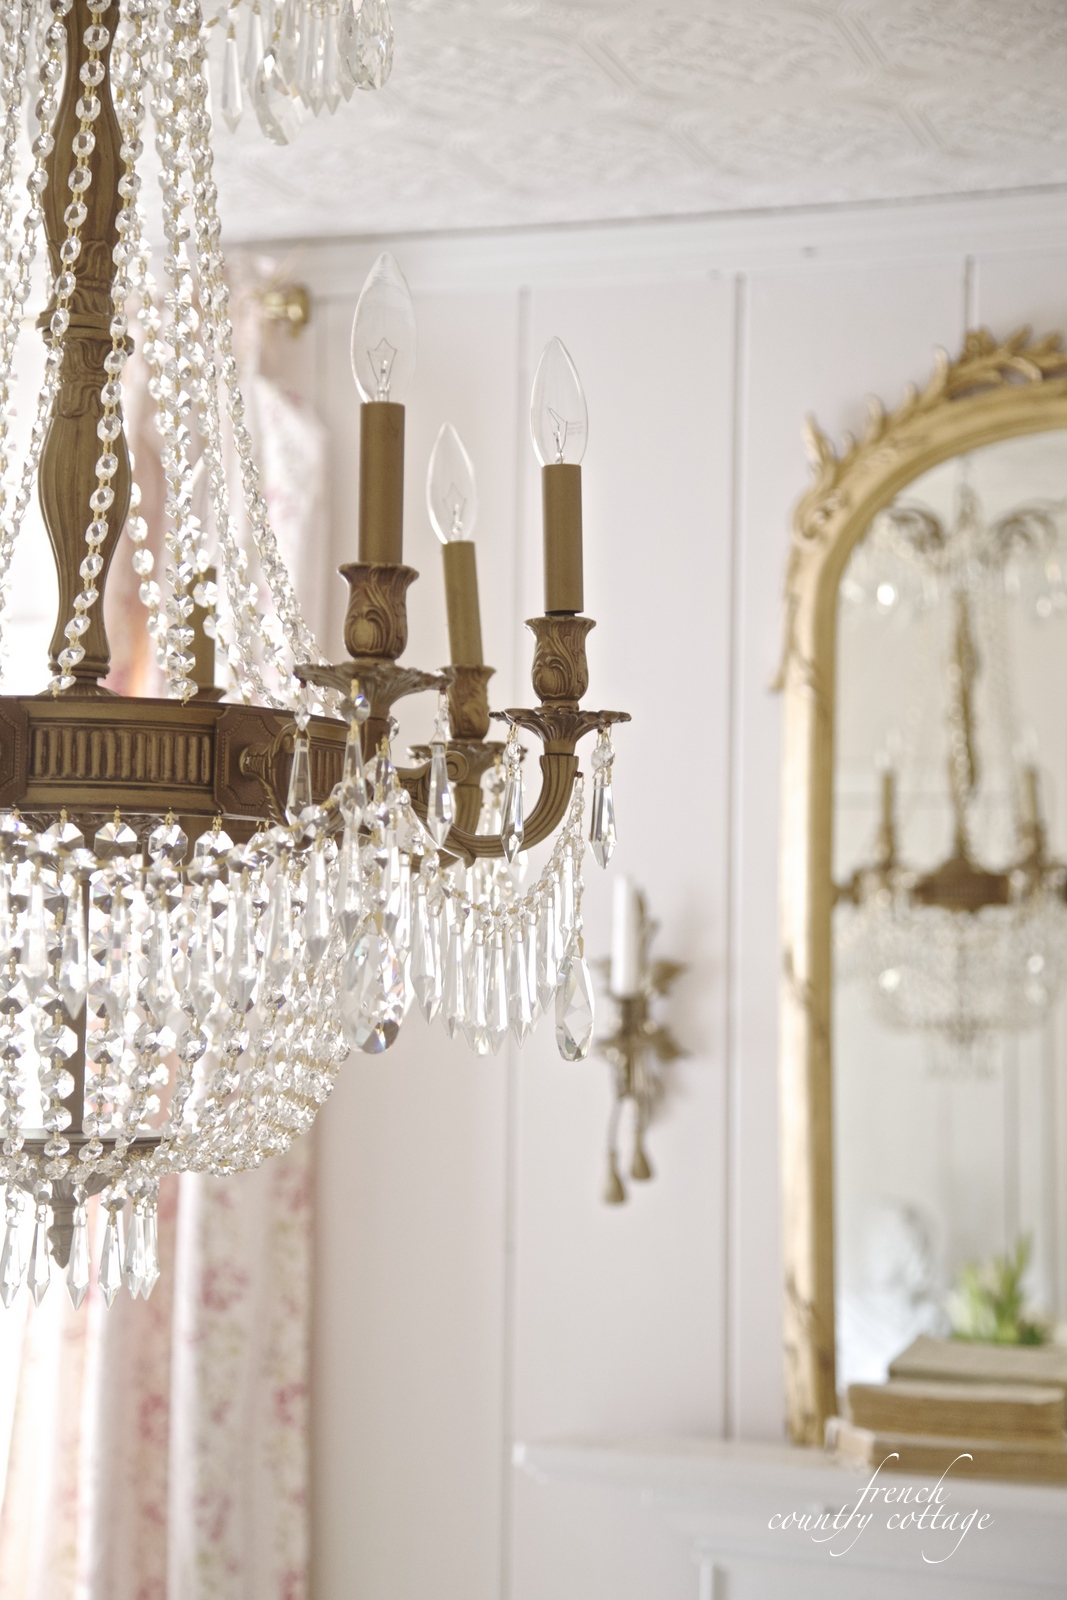 French Style Chandelier - FRENCH COUNTRY COTTAGE